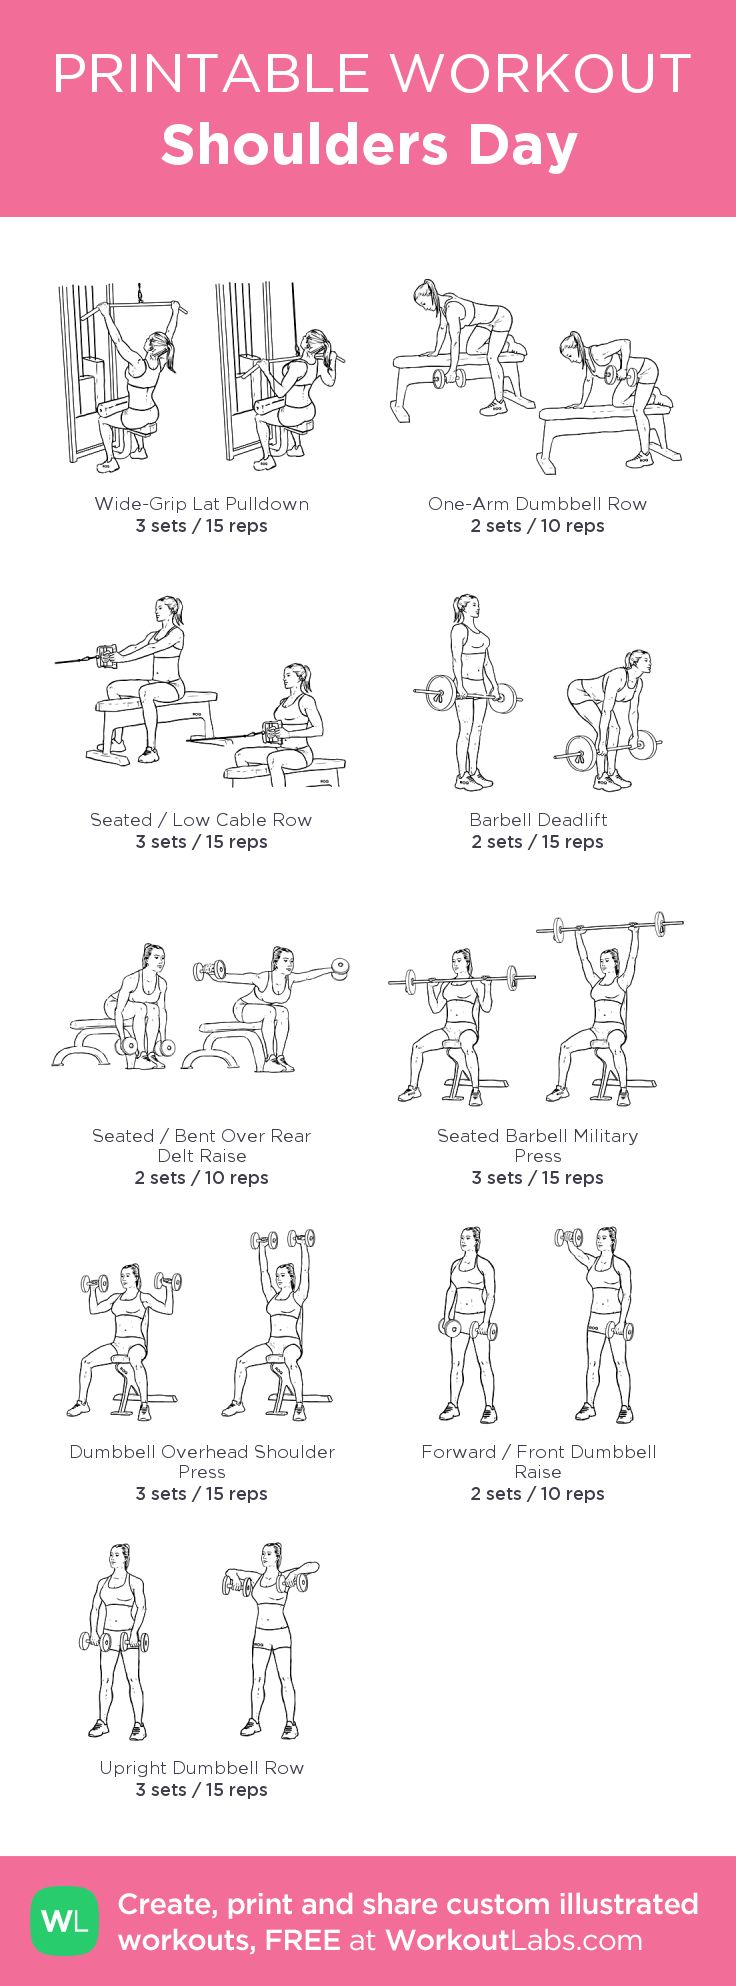 Shoulders Day:my visual workout created at WorkoutLabs.com • Click through to customize and download as a FREE PDF! #customworkout